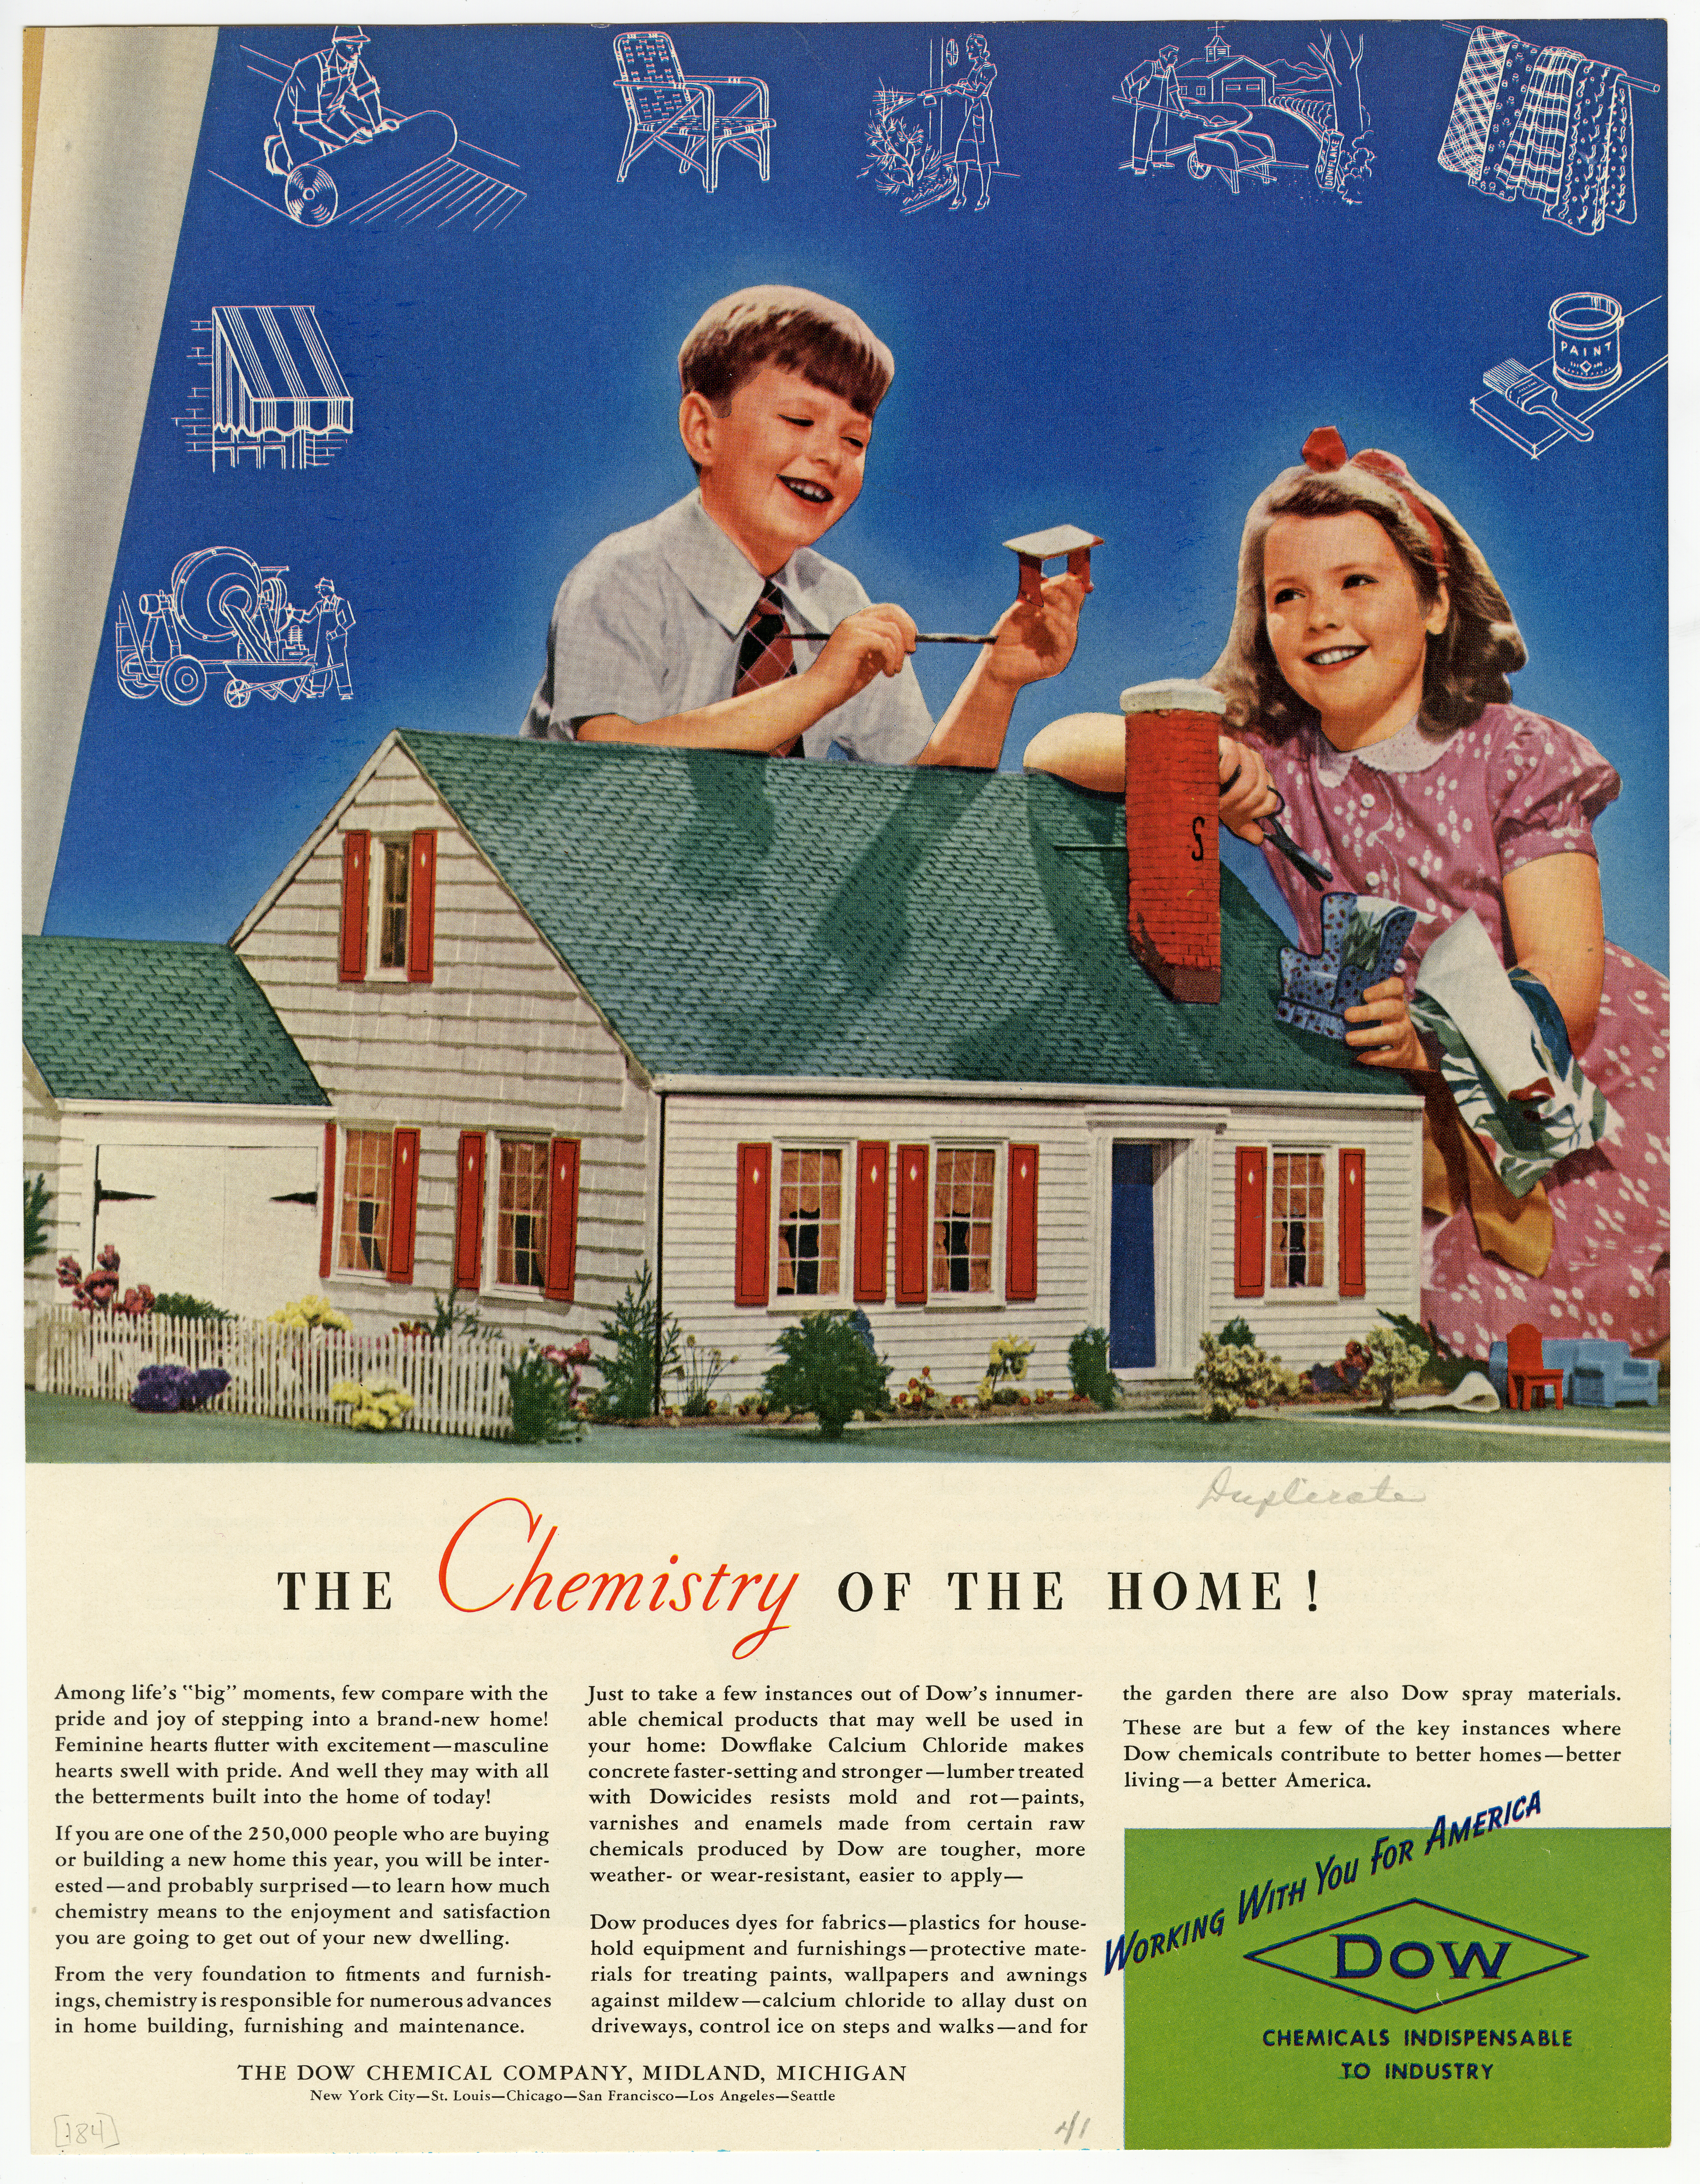 The Chemistry of the Home